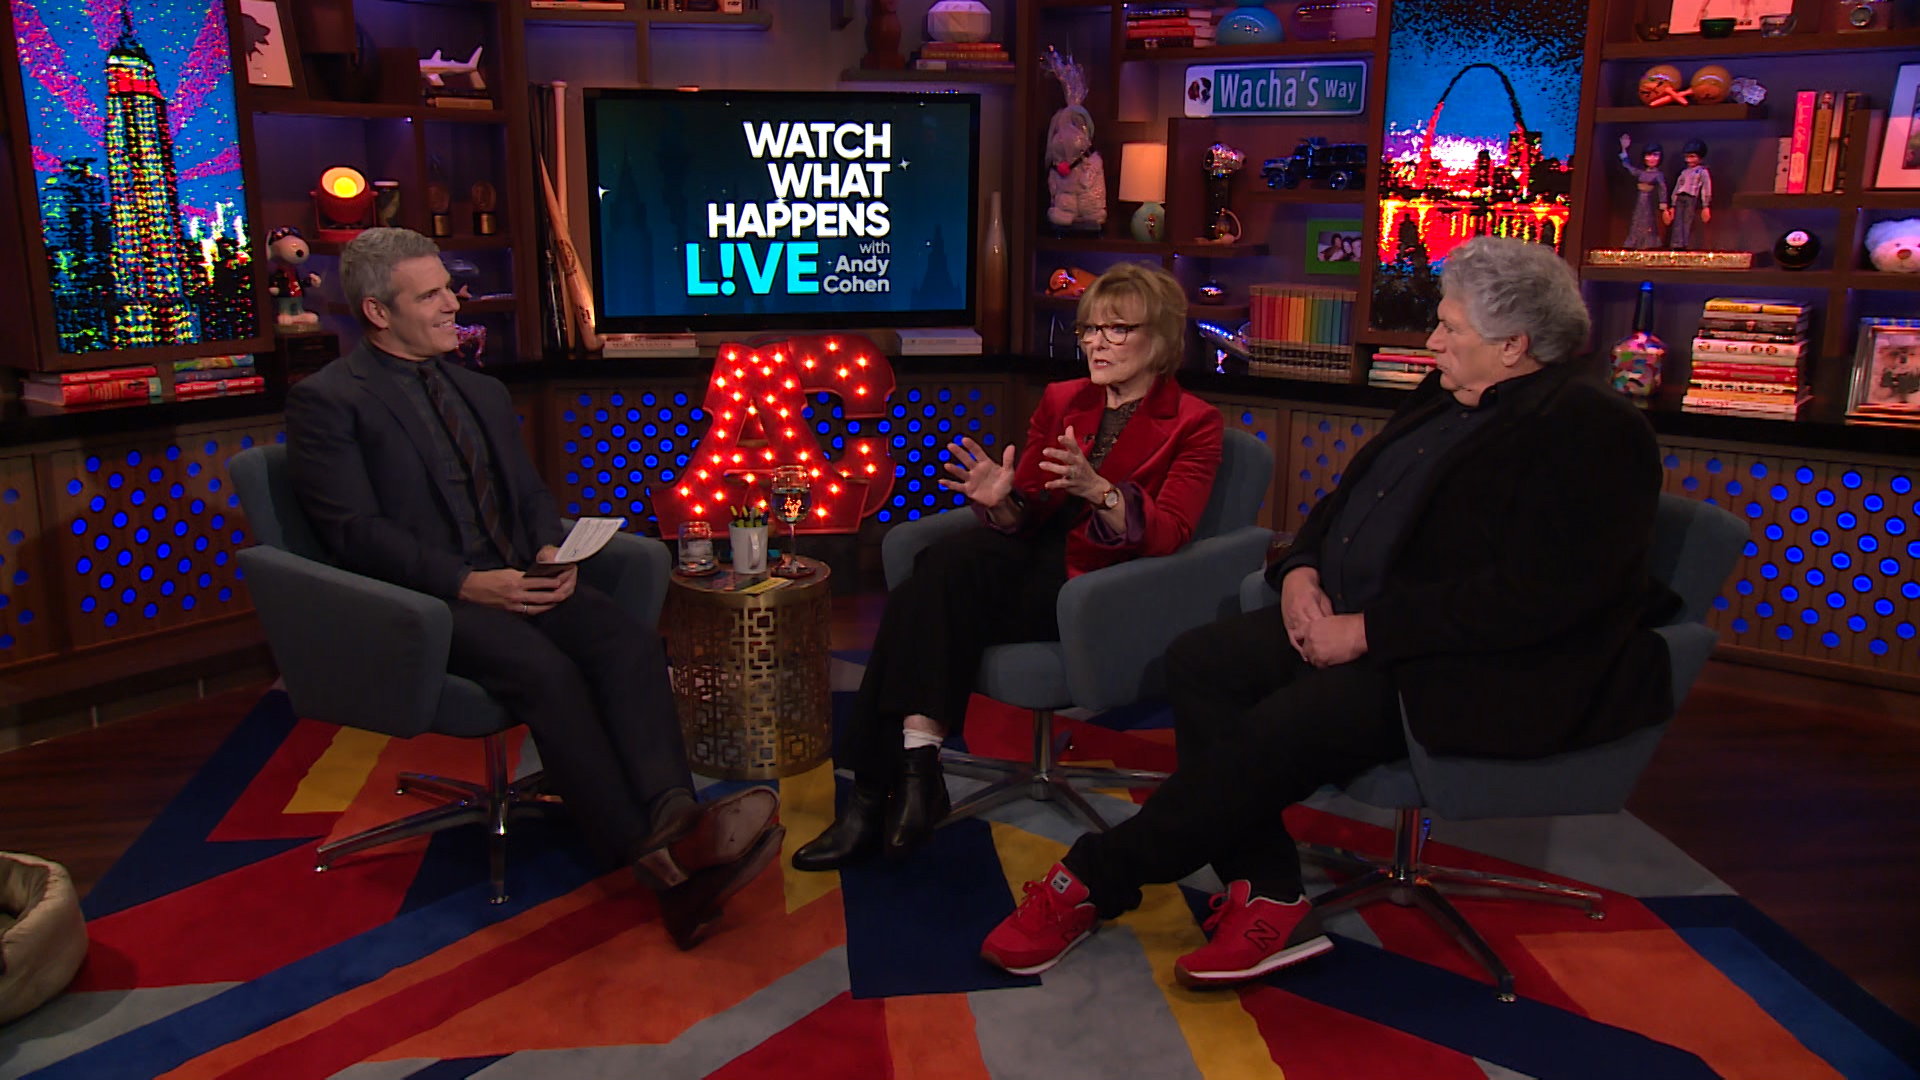 After Show: Jane Curtin's Relationship with Lorne Michaels